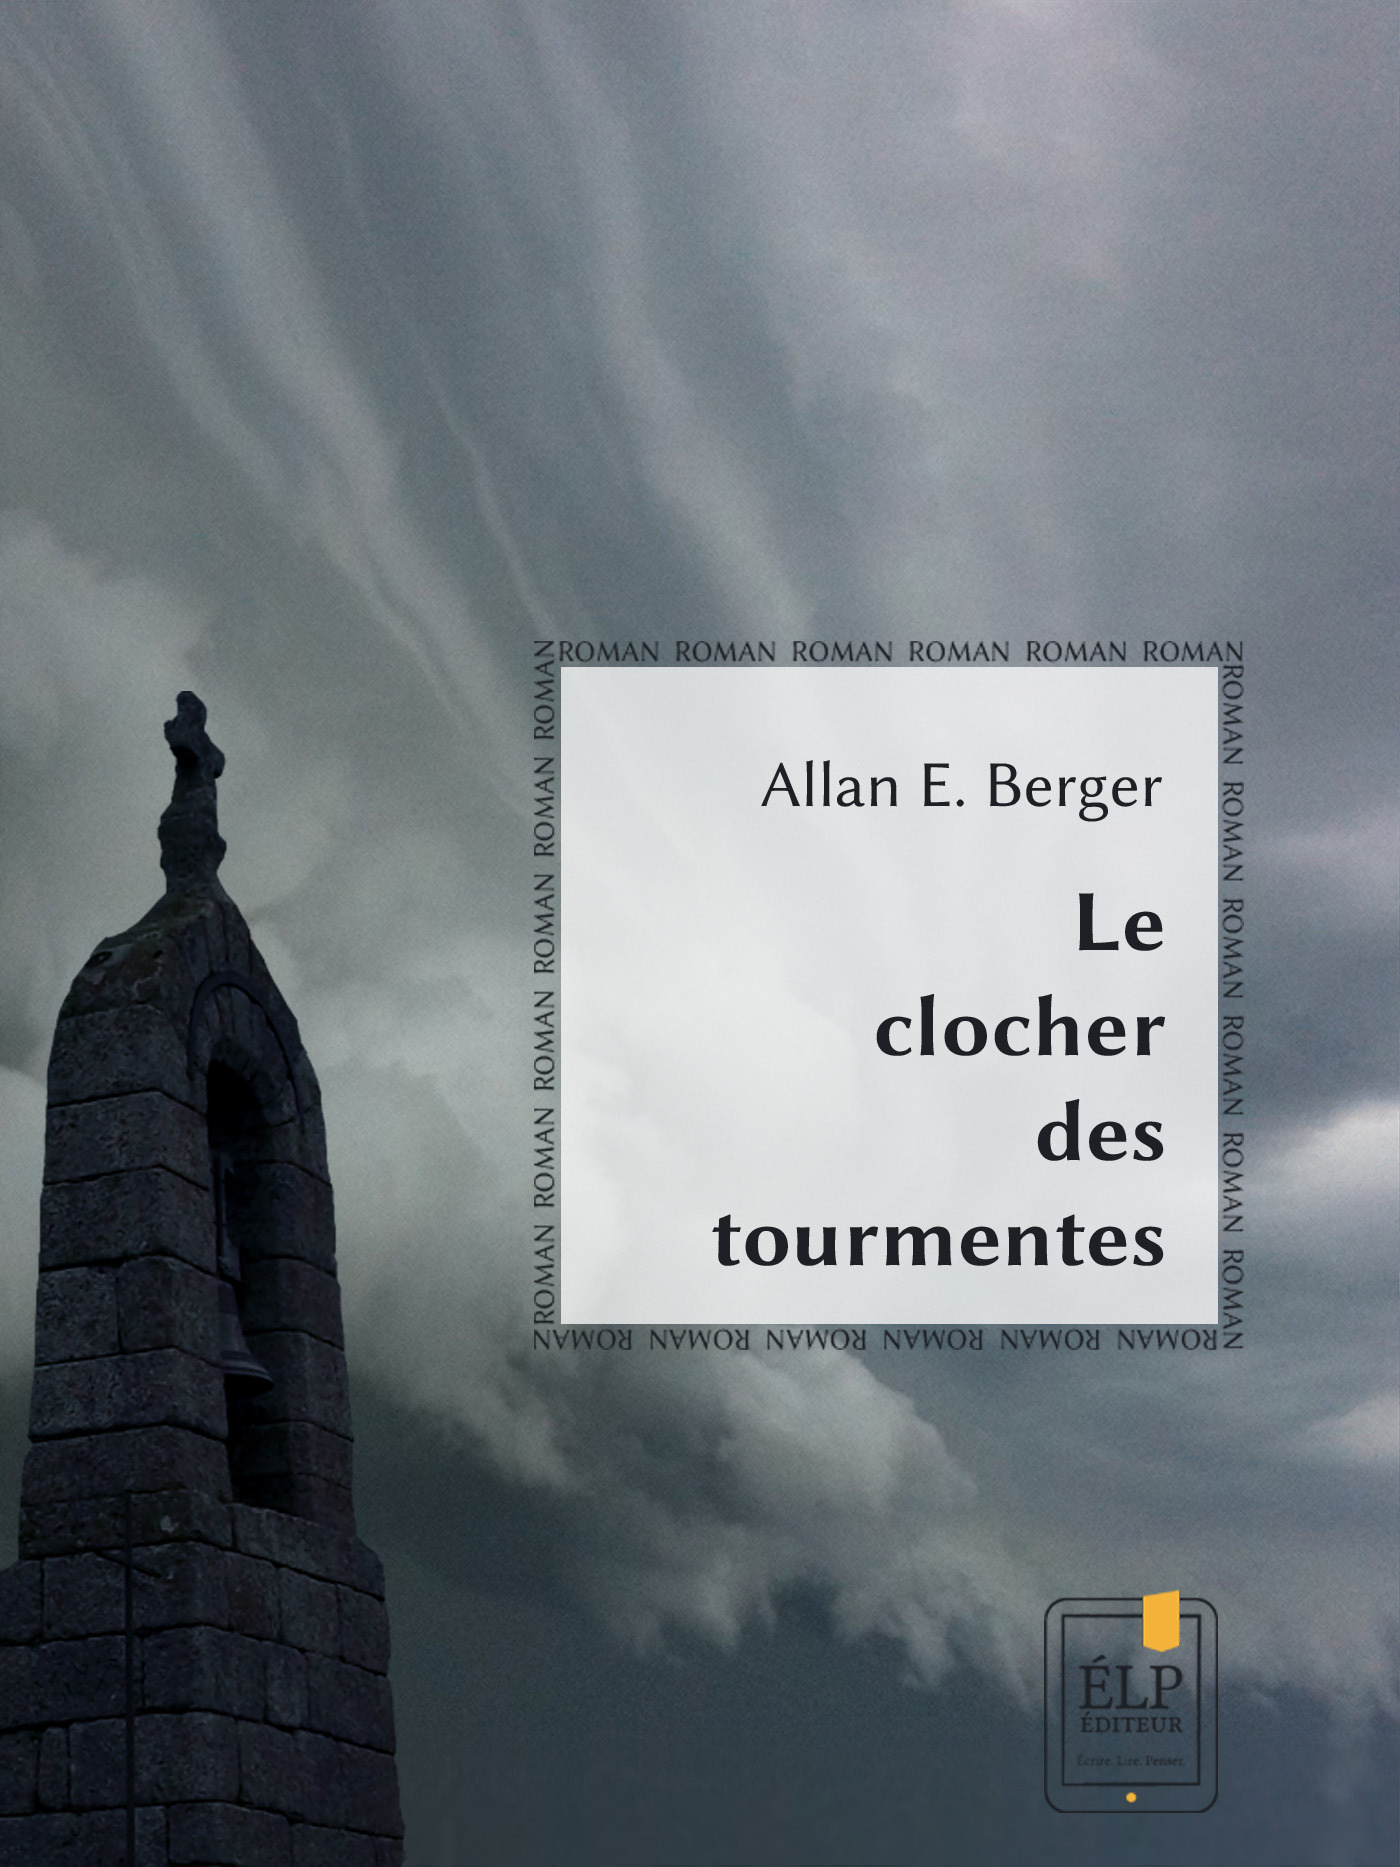 Le clocher des tourmentes